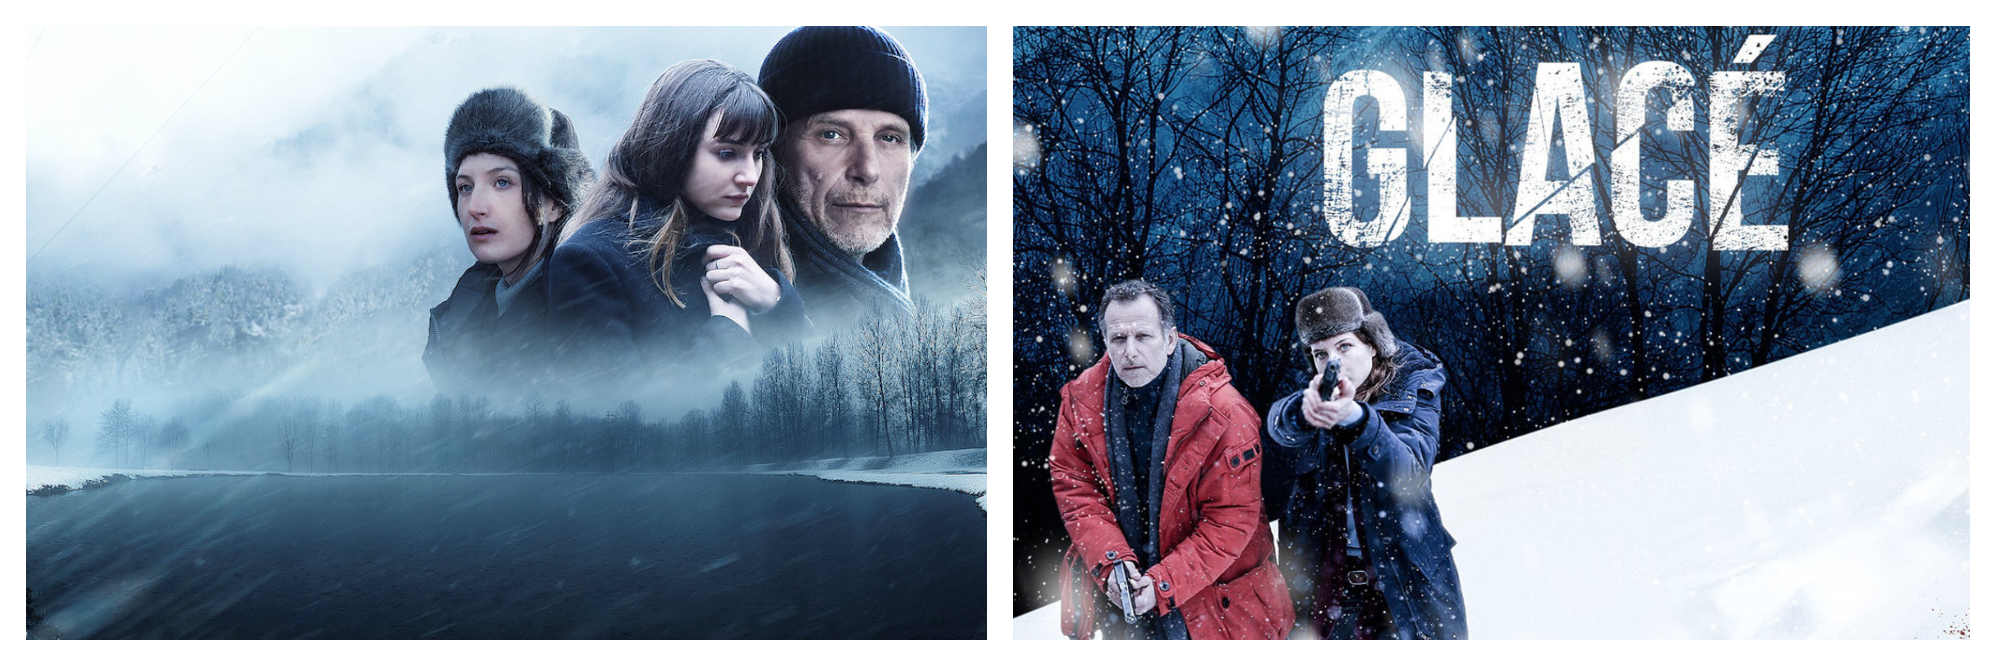 Left, cast of Steven Lasry against backdrop of misty mountains. Right, cast of The Frozen Dead Netflox series with one holding up a gun against a backdrop of snow.